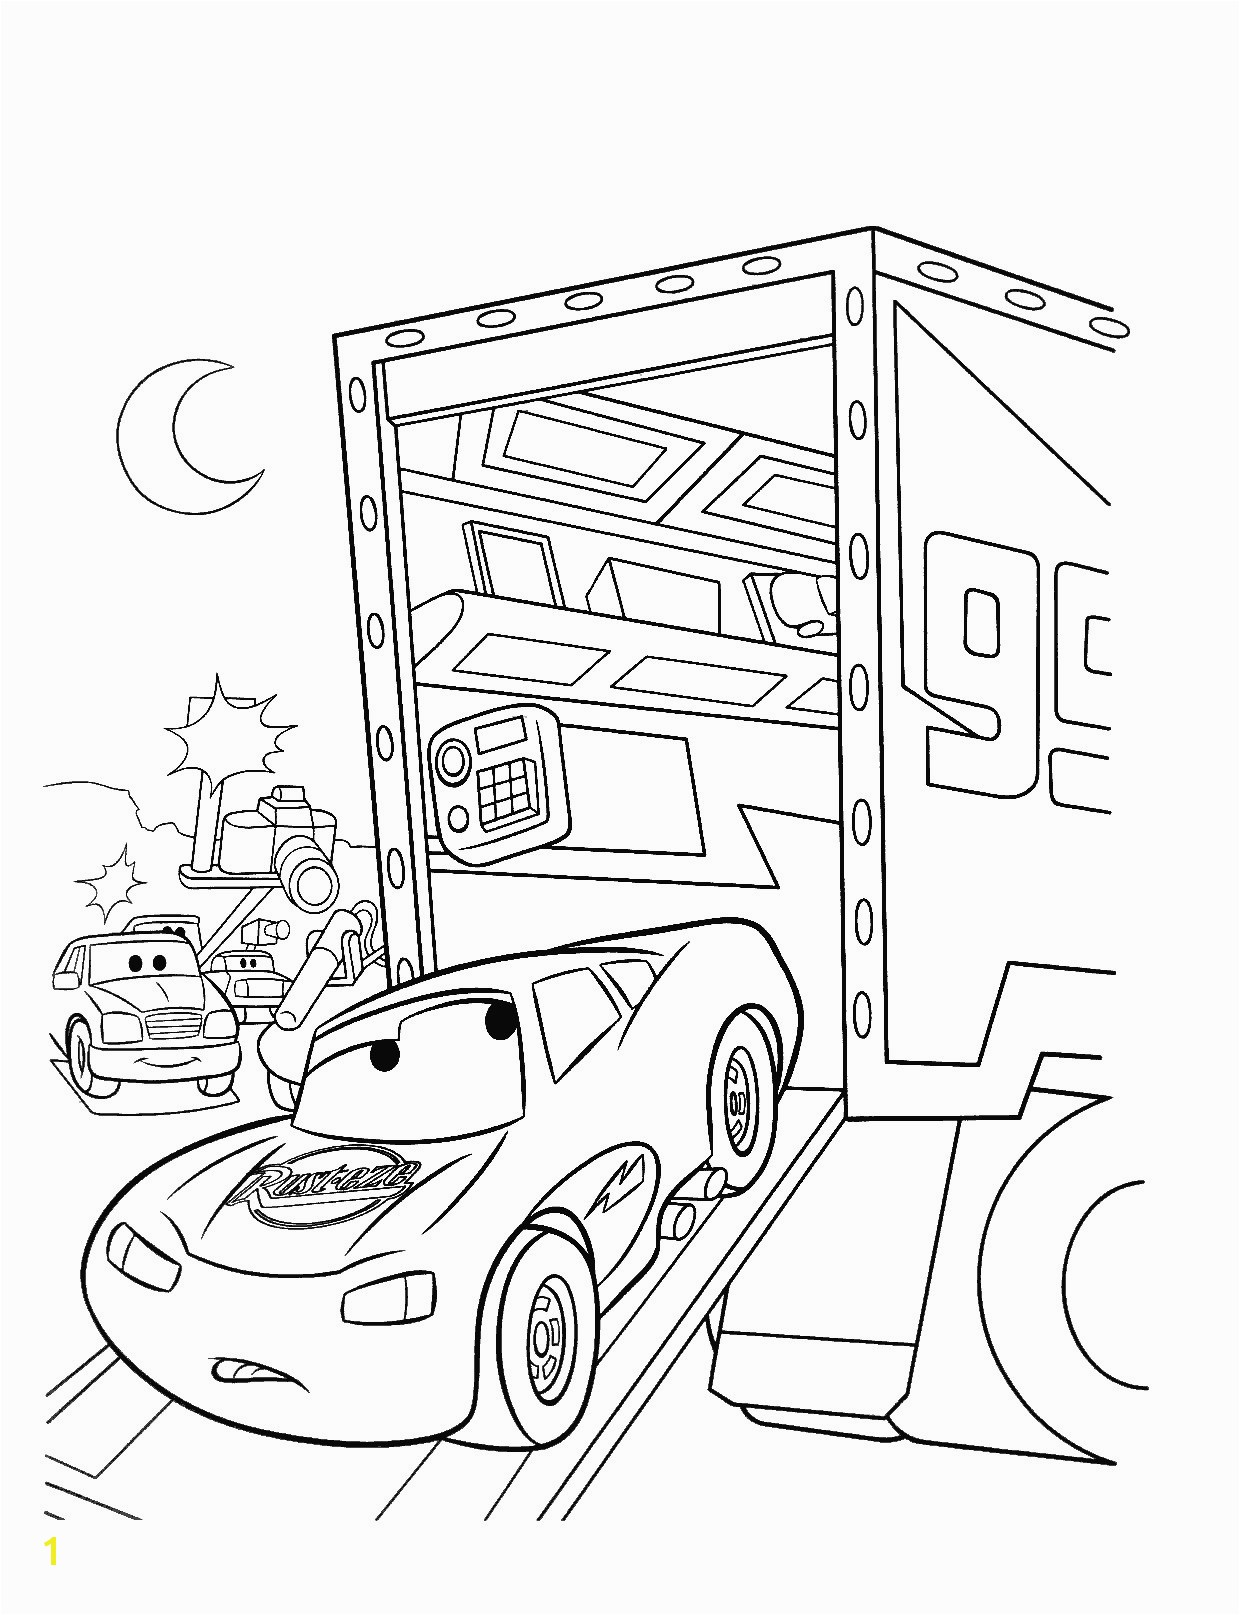 Piston Cup Coloring Page New Cars the Movie Coloring Pages Inspirational Informative Piston Cup